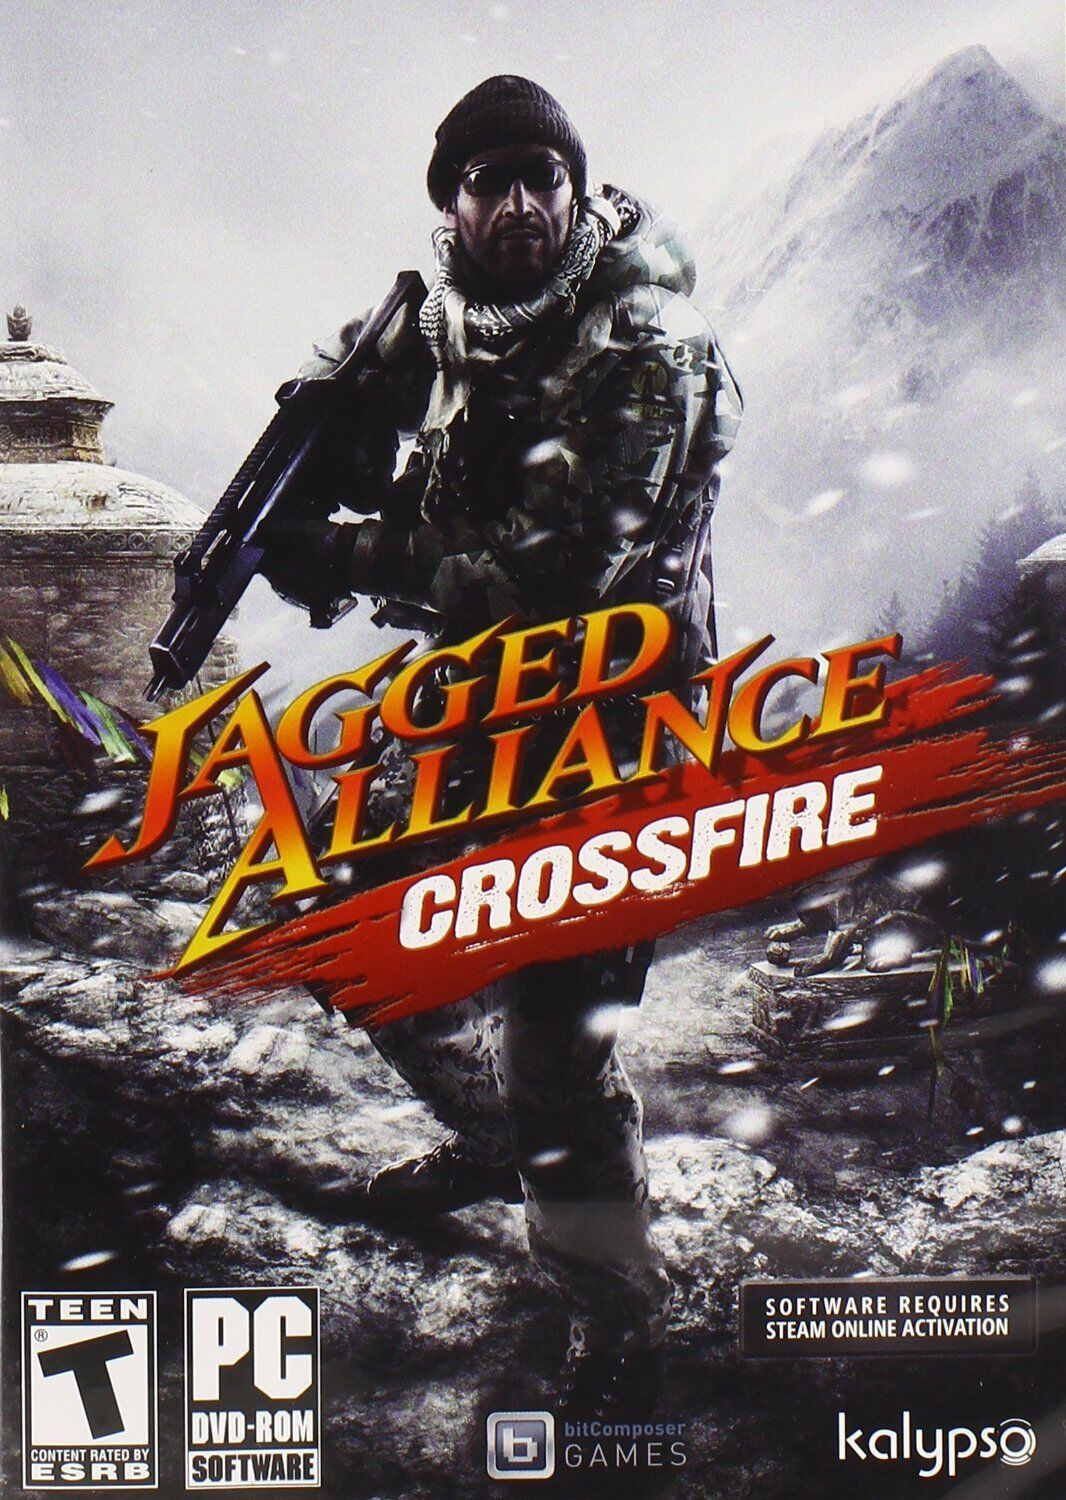 Computer Games - Jagged Alliance Crossfire PC Games Windows 10 8 7 XP Computer stand alone NEW